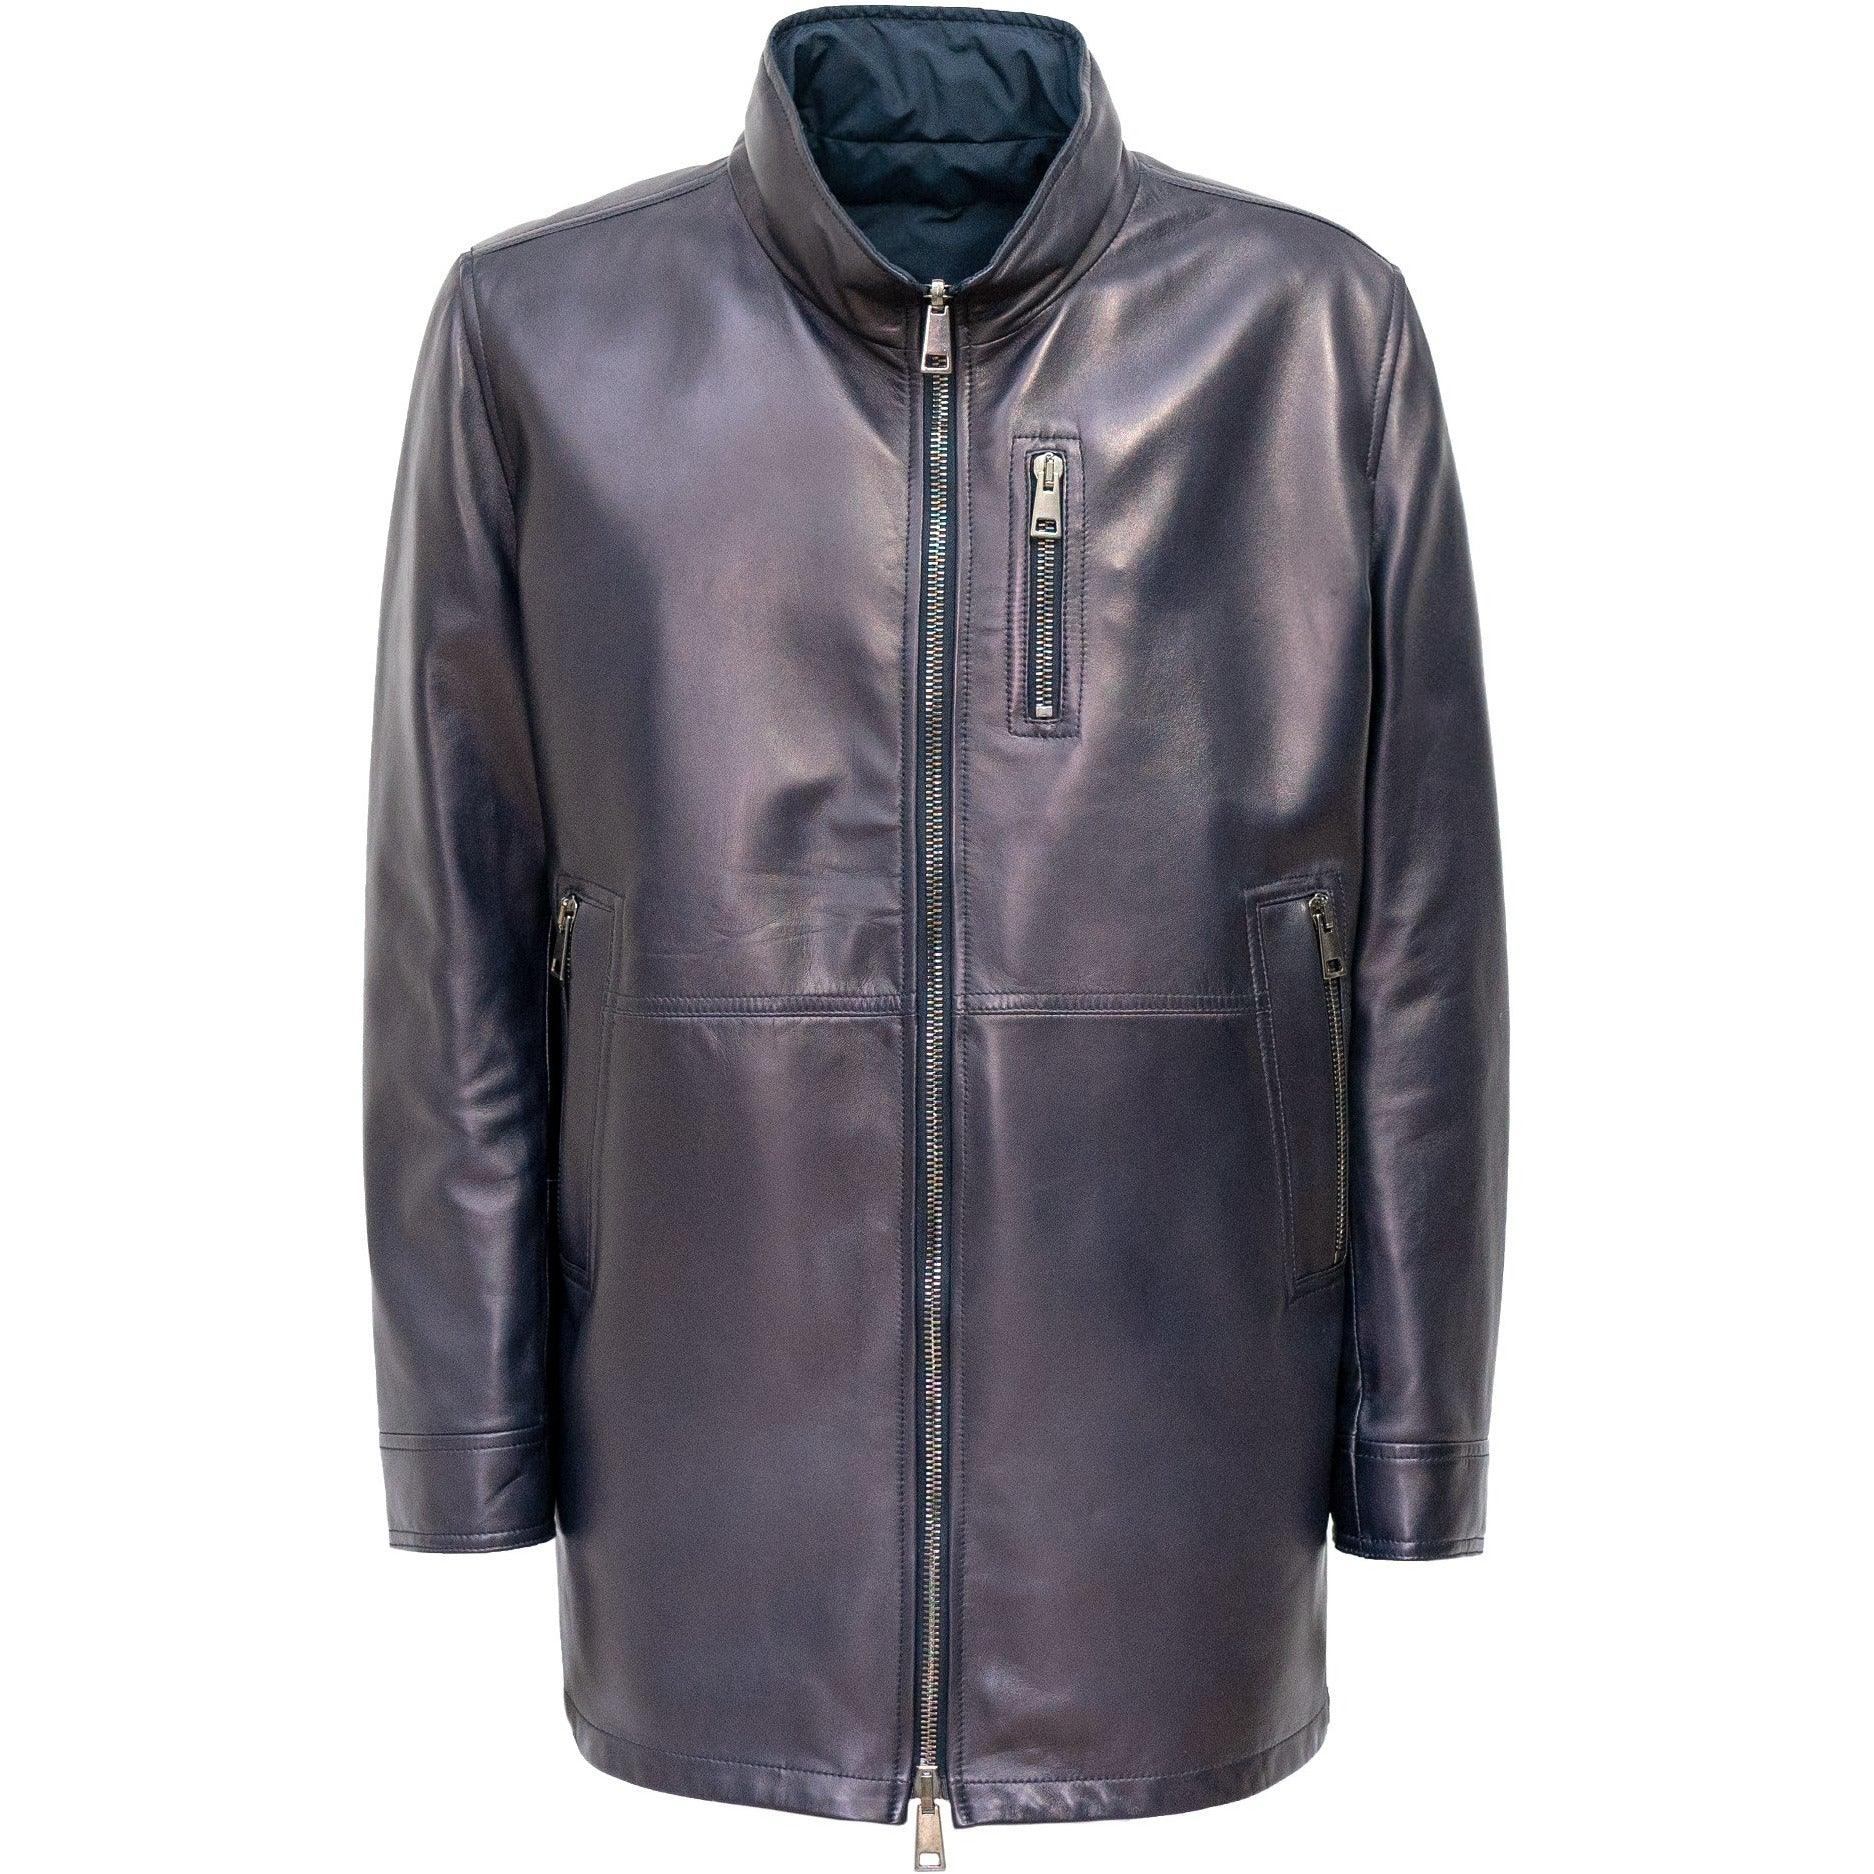 PRG008M Men Leather Jacket - New Fall Winter 2019-2020 Collection